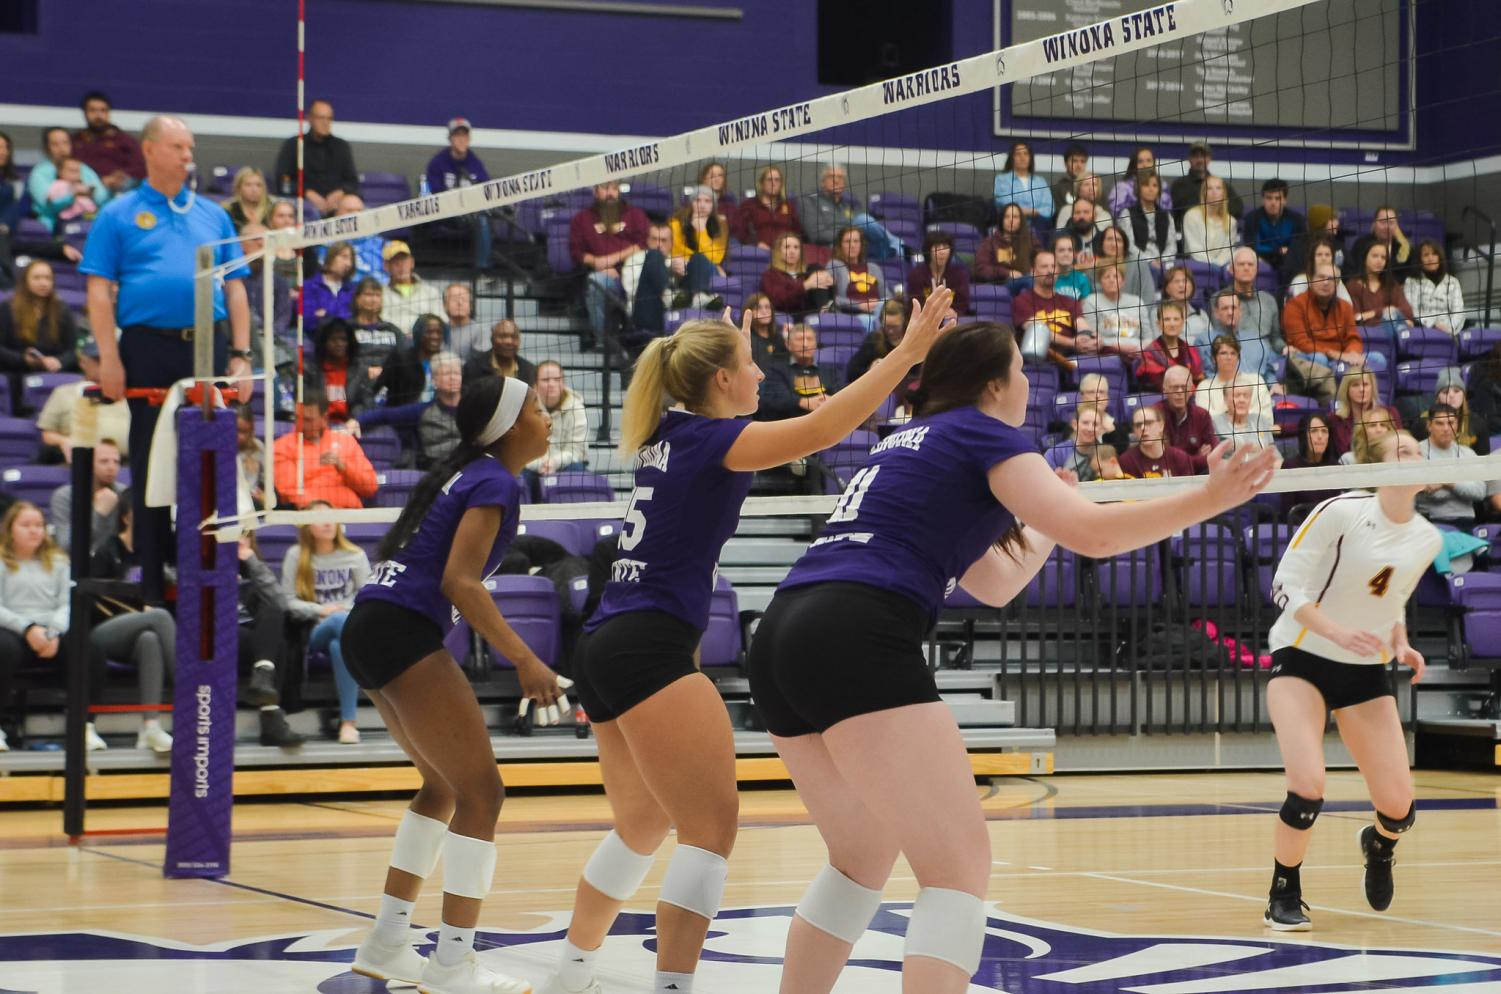 Left to right: Paige Christopher, Madison Rizner and Kate Masberg guard the net against the University of Minnesota Duluth on Saturday, Nov. 16 in McCown Gymnasium. After the win this weekend the Warriors head into the NSIC Tournament with a season record of 21-7.